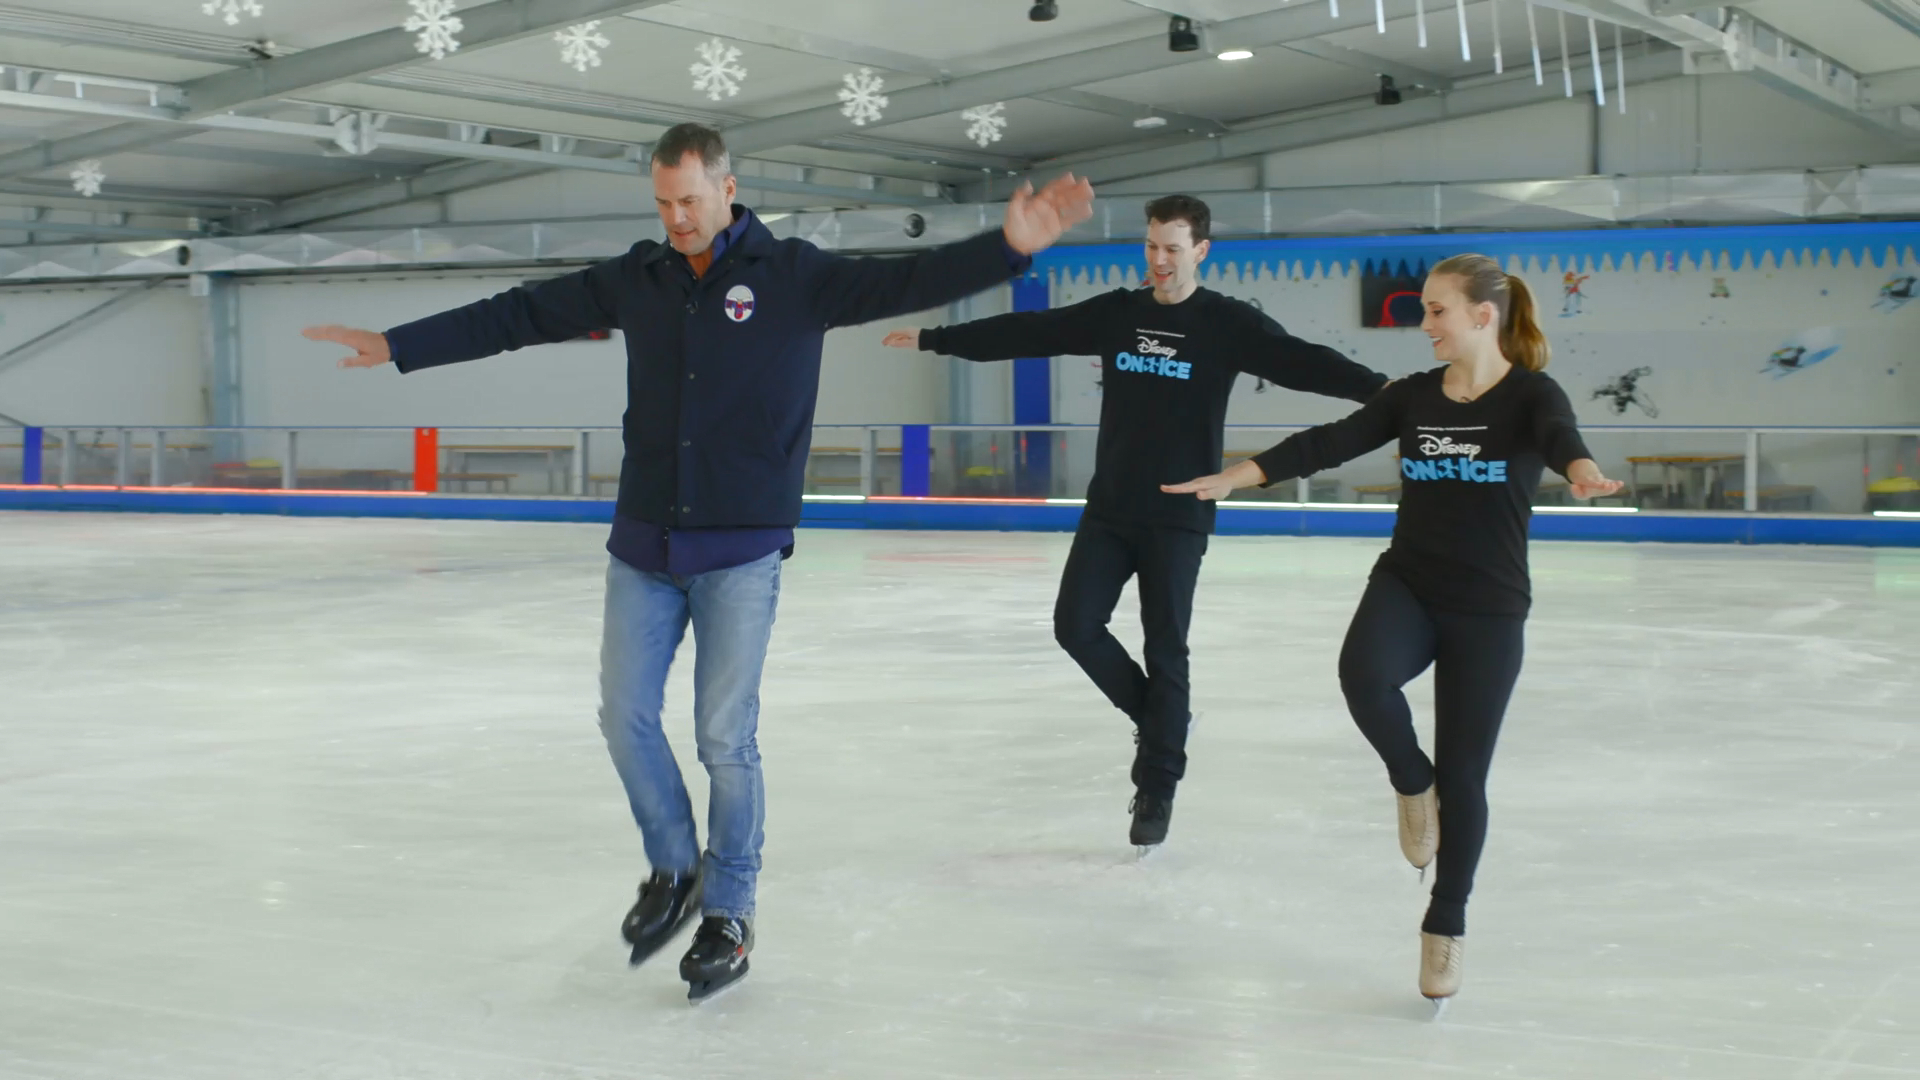 New Disney On Ice ambassador Tom Williams hits the ice rink